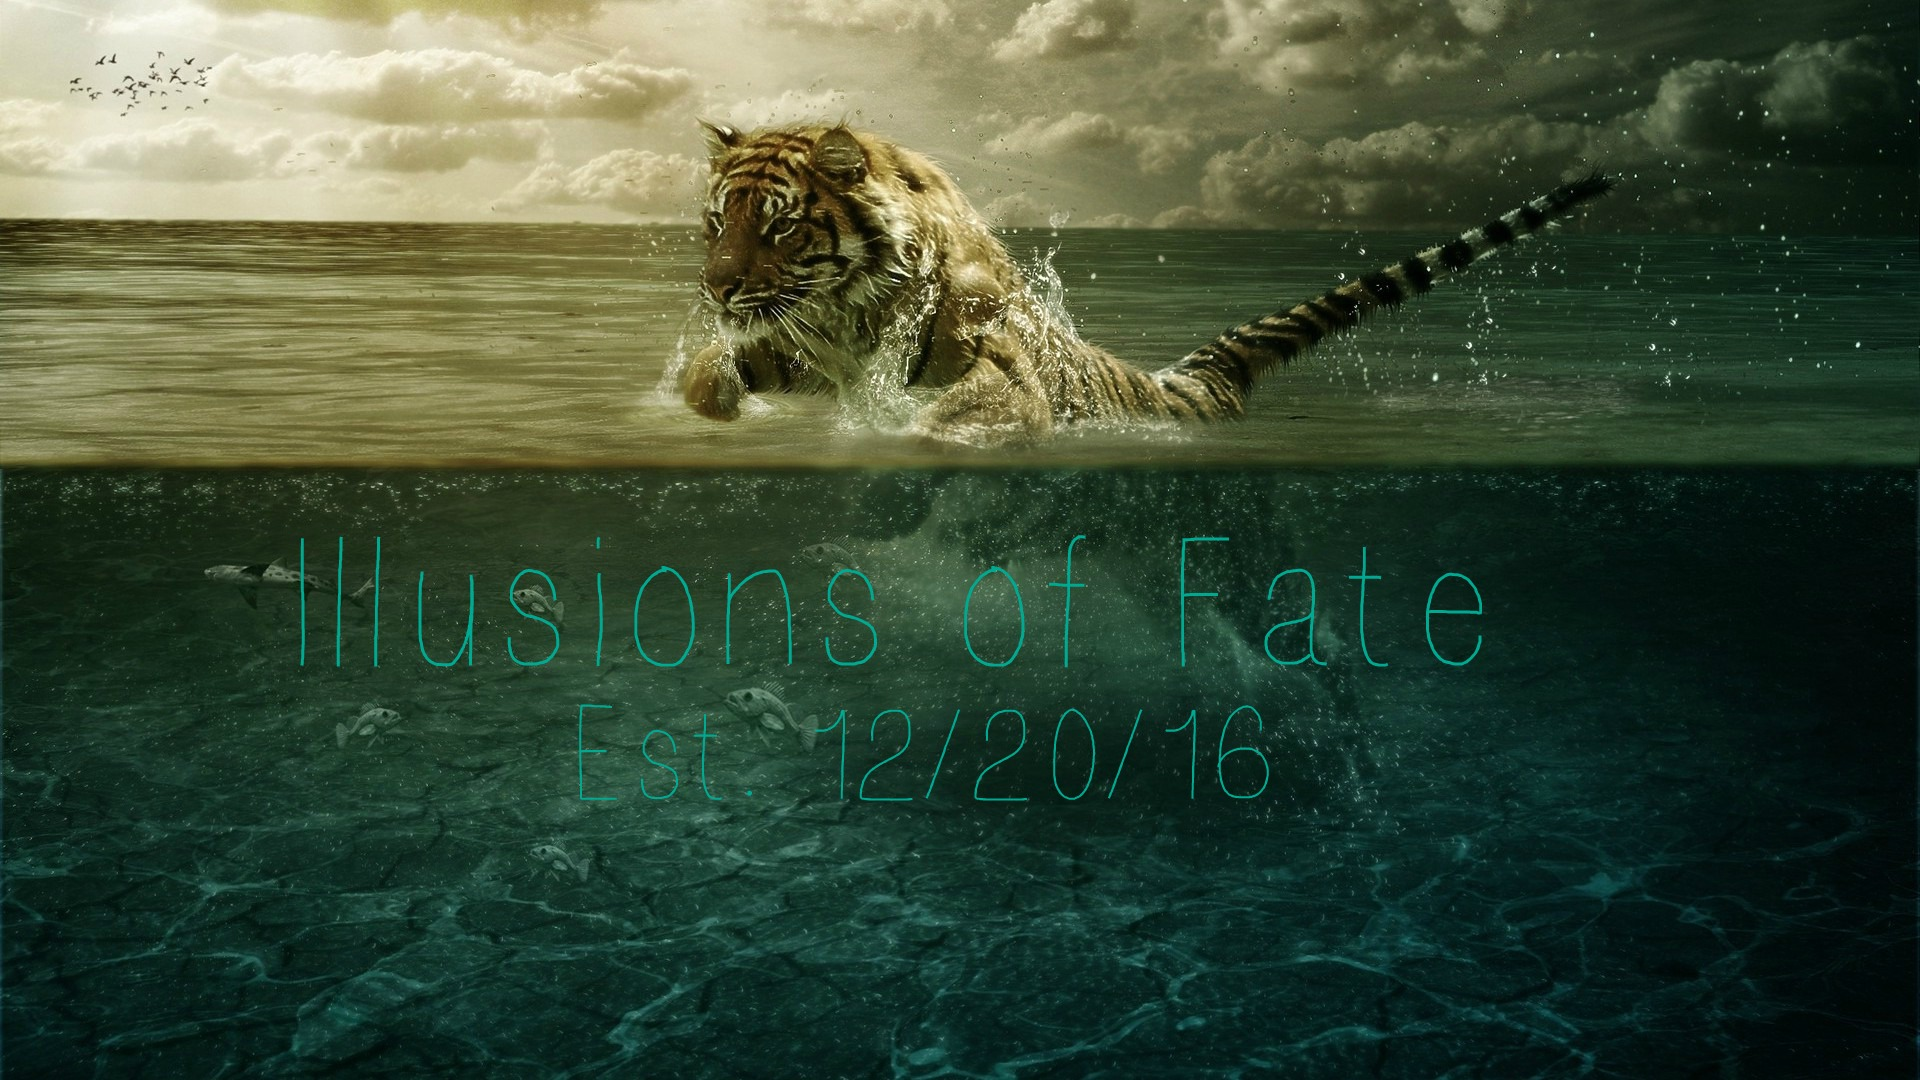 Image tiger leaps in the water digital art hd wallpaper 1920x1080 tiger leaps in the water digital art hd wallpaper 1920x1080 2162g thecheapjerseys Images